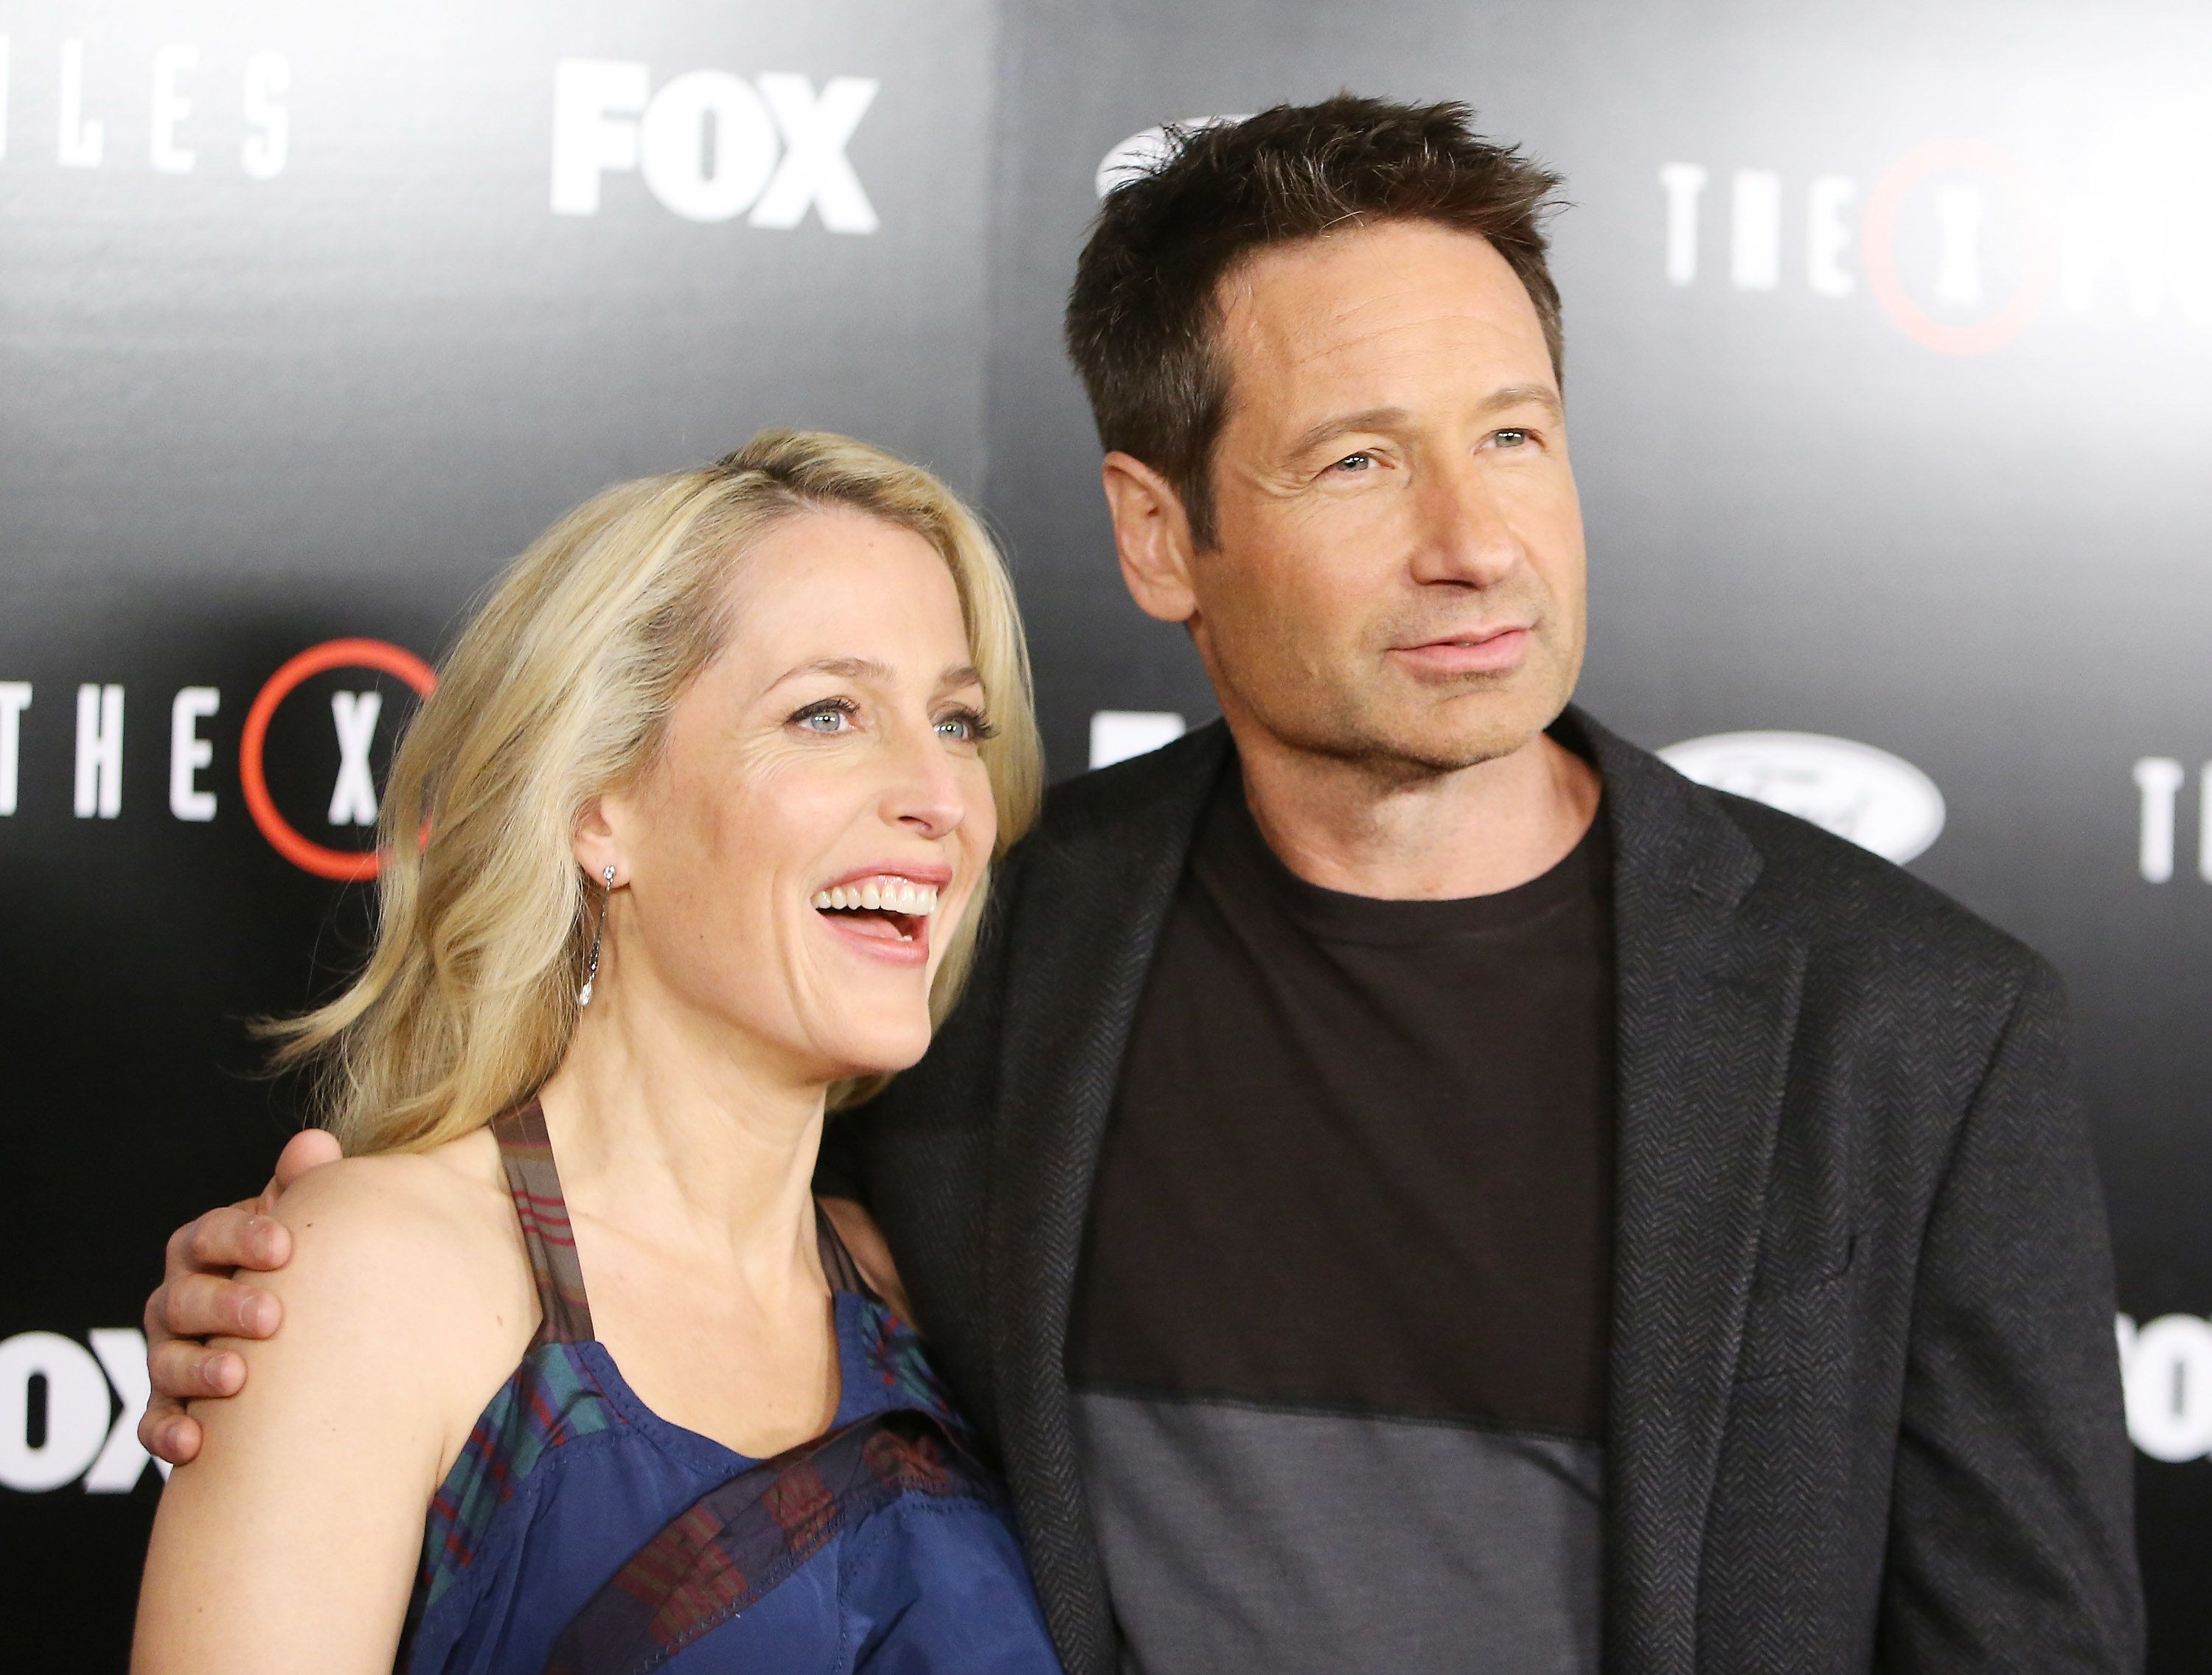 LOS ANGELES, CA - JANUARY 12:  Gillian Anderson (L) and David Duchovny arrive at the Los Angeles premiere of Fox's 'The X-Files' held at California Science Center on January 12, 2016 in Los Angeles, California.  (Photo by Michael Tran/FilmMagic)